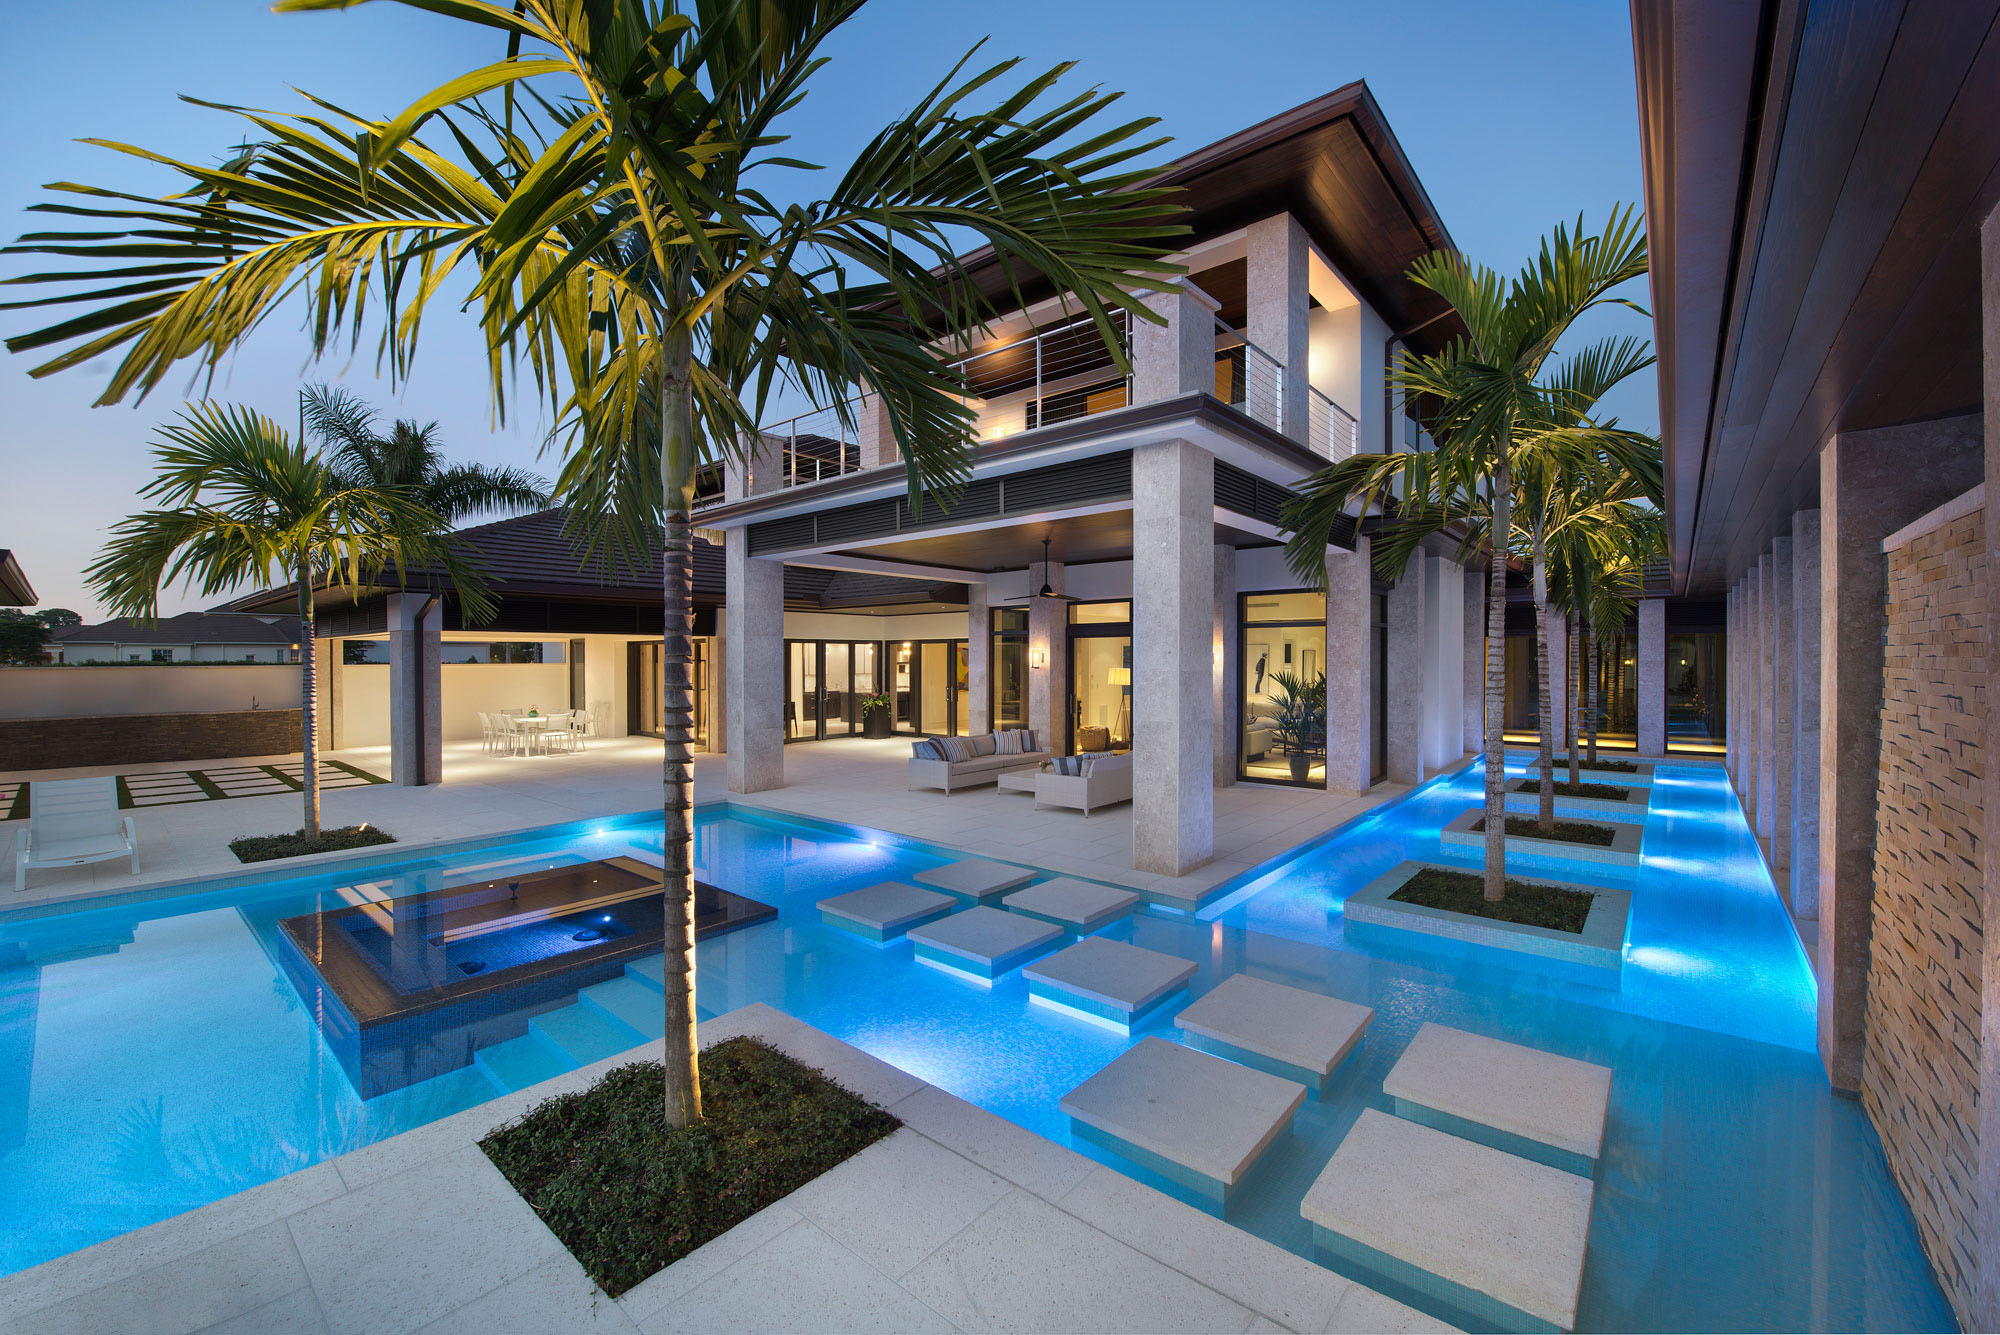 Custom dream home in florida with elegant swimming pool Custom home interior design